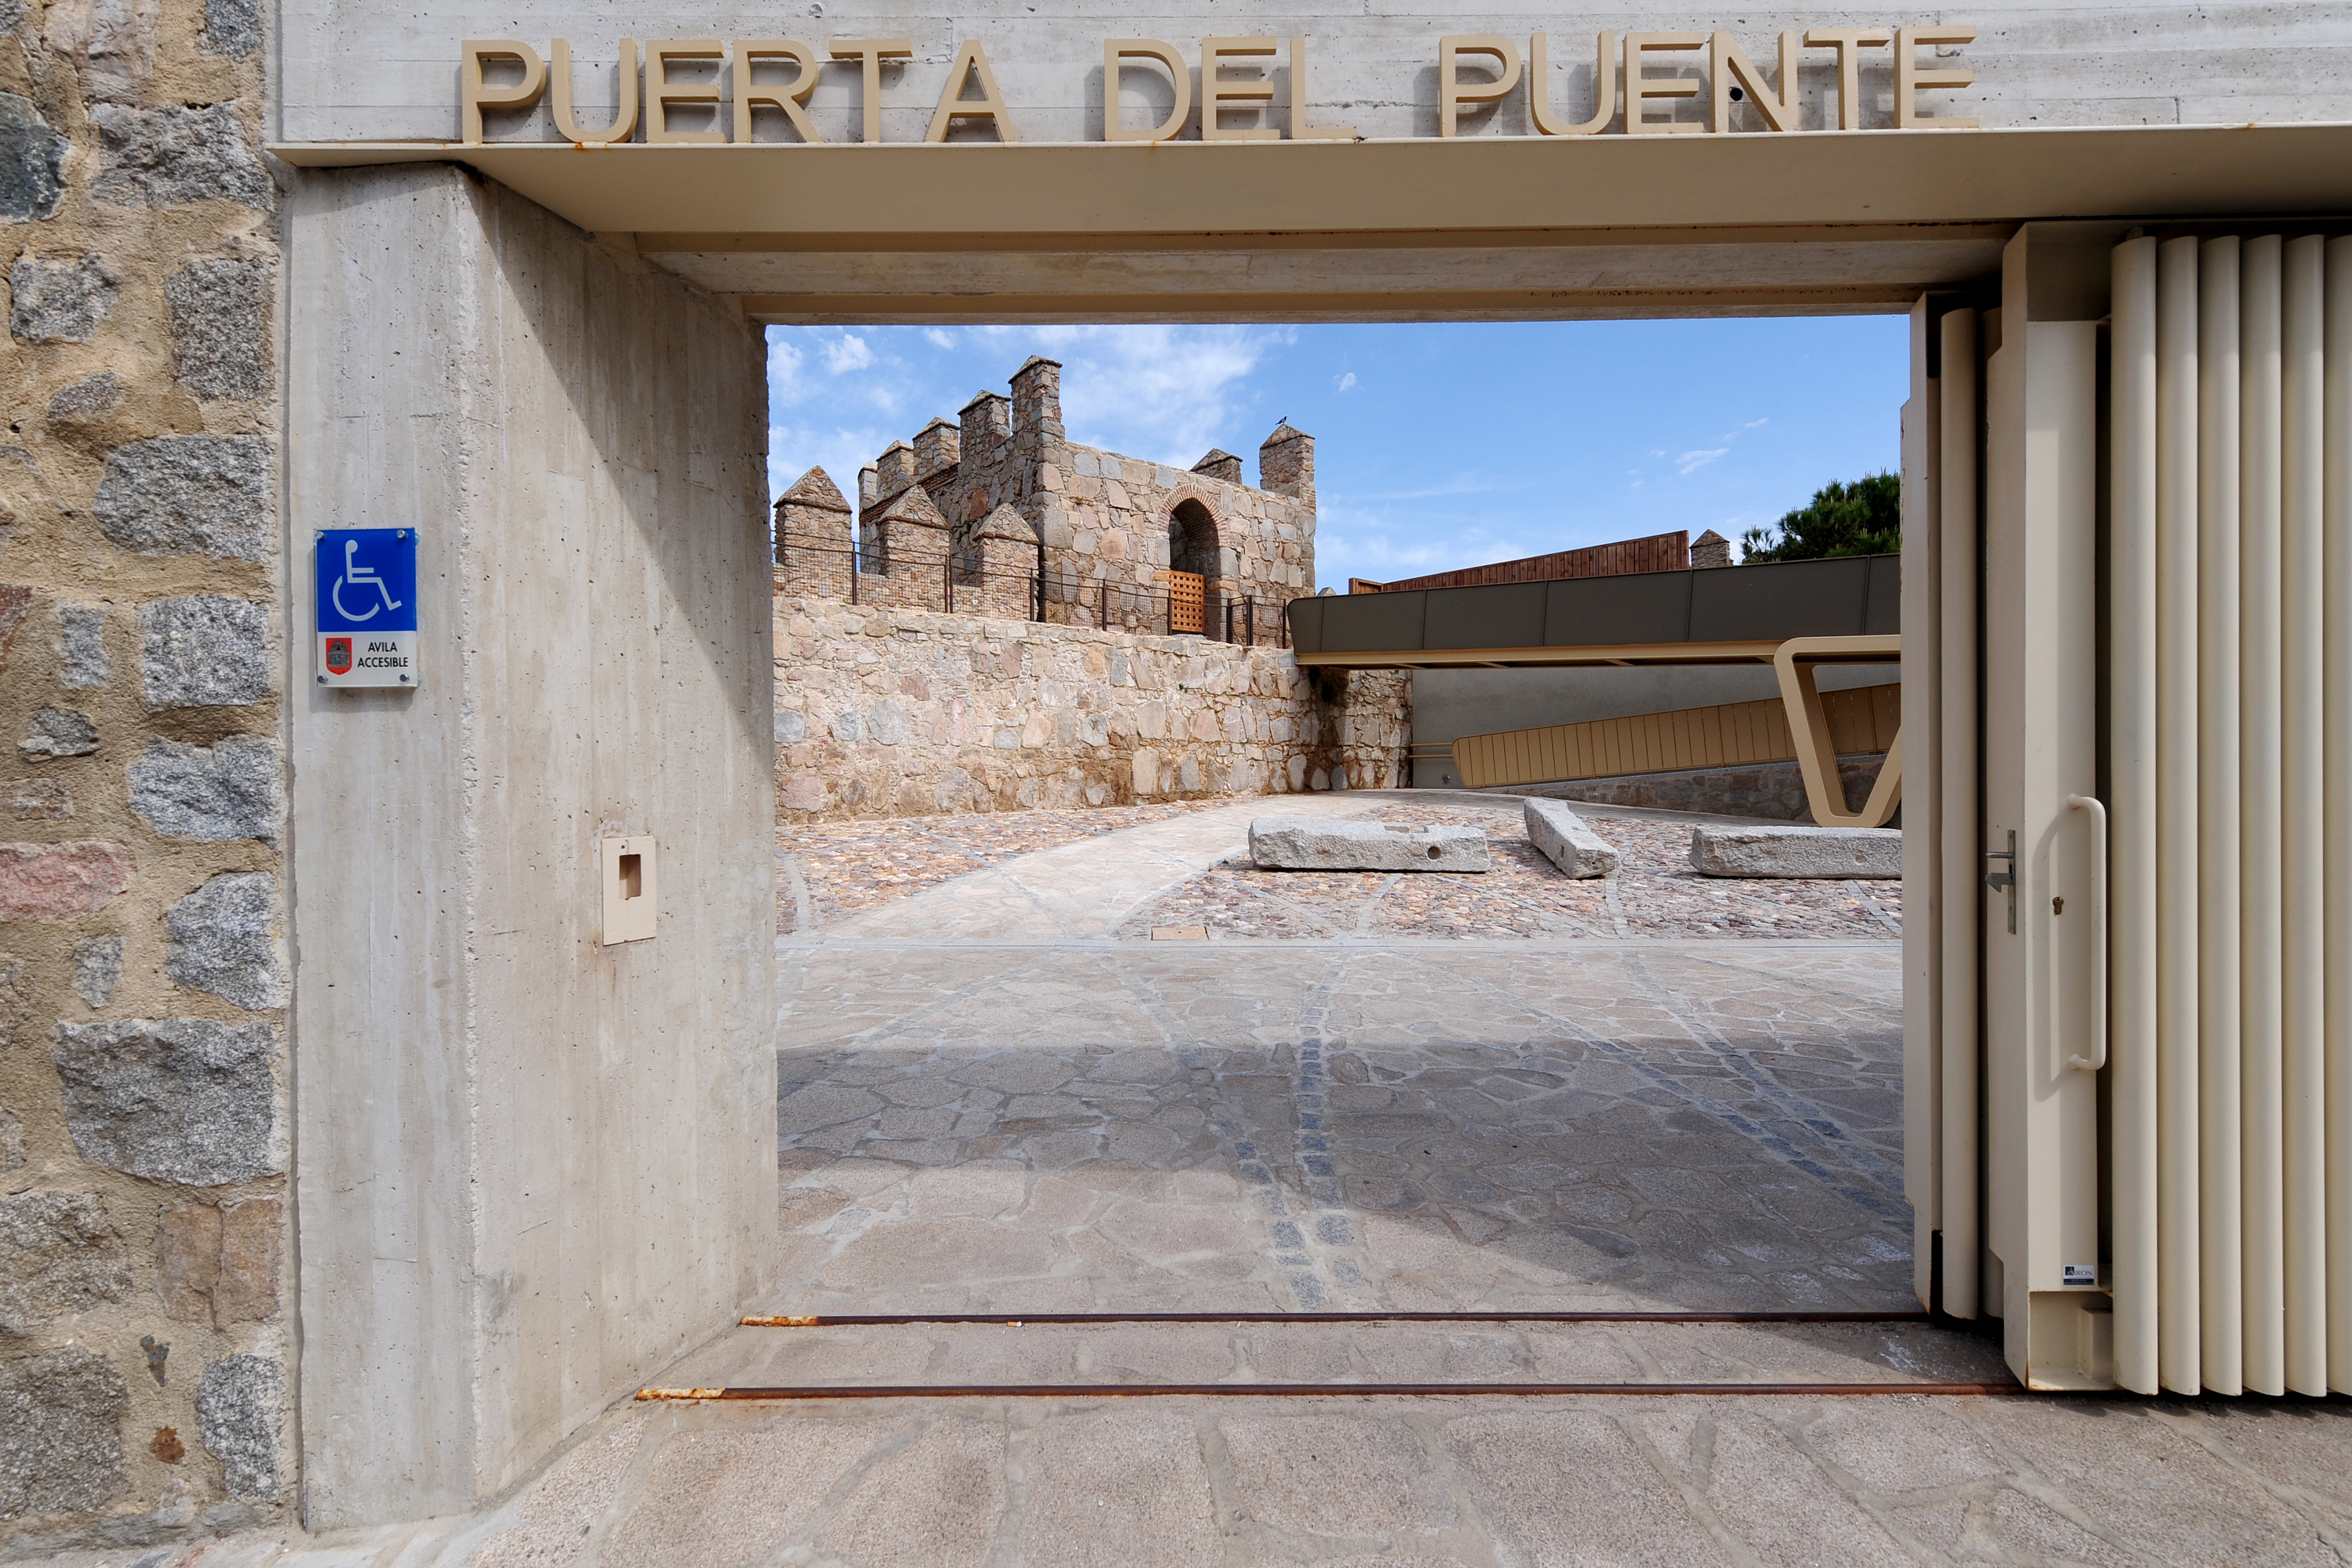 The new access to the wall at the Puerta del Puente